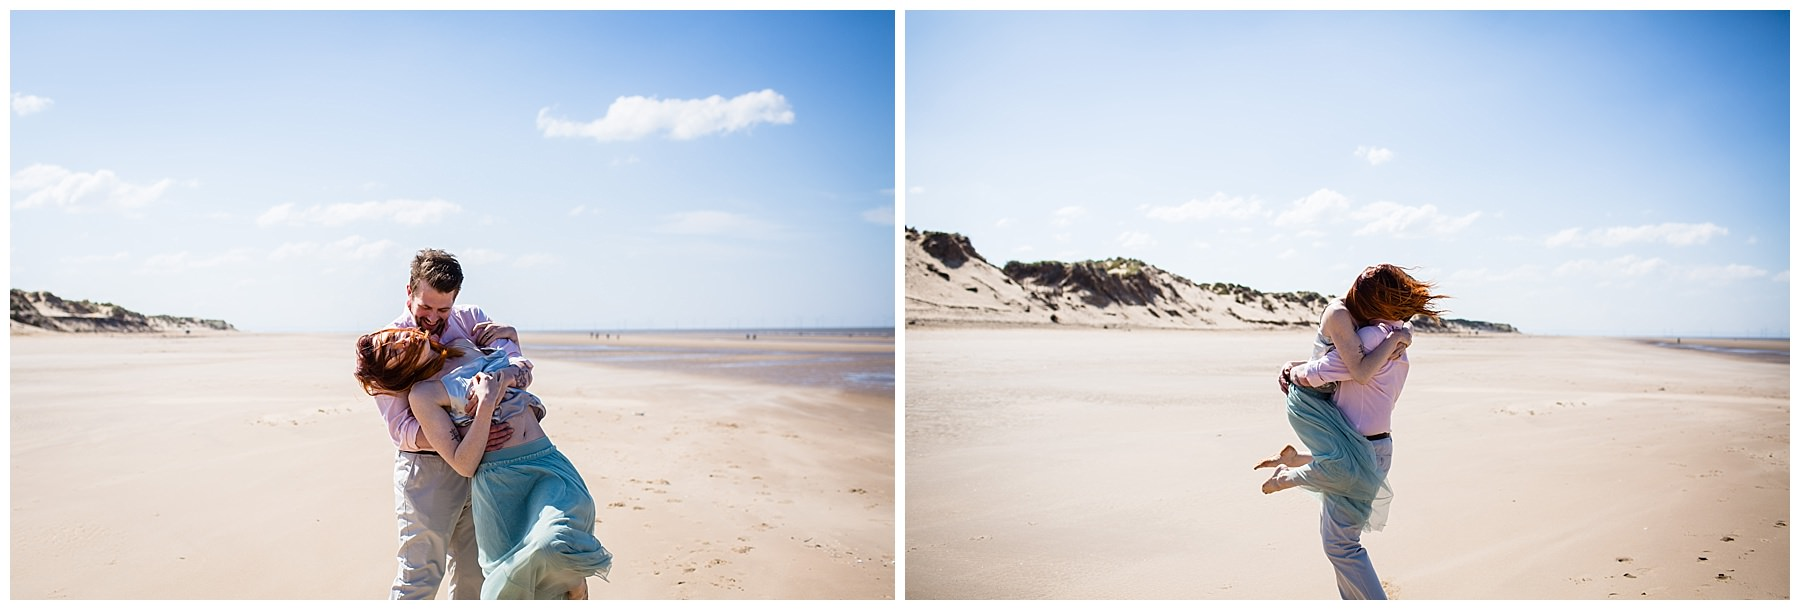 couple amongst the views at formby beach